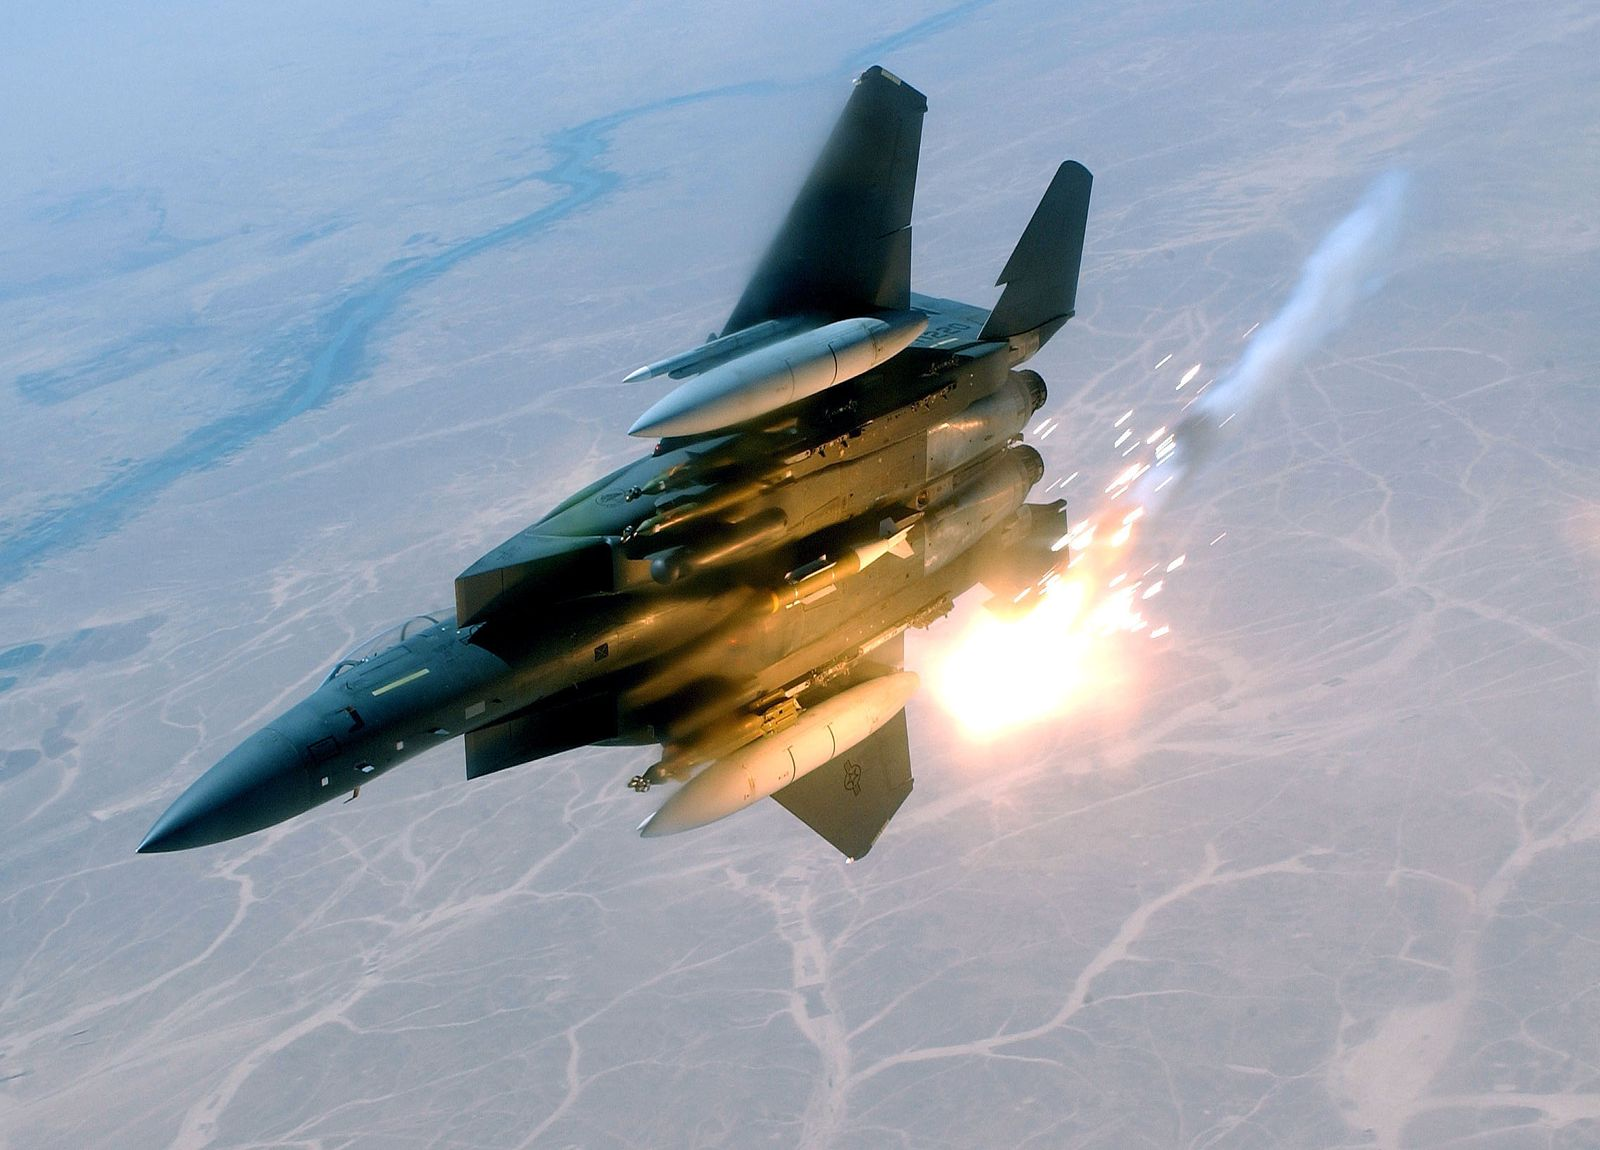 The Story of Why Russia Would Love to Battle New F-15 EX Fighters